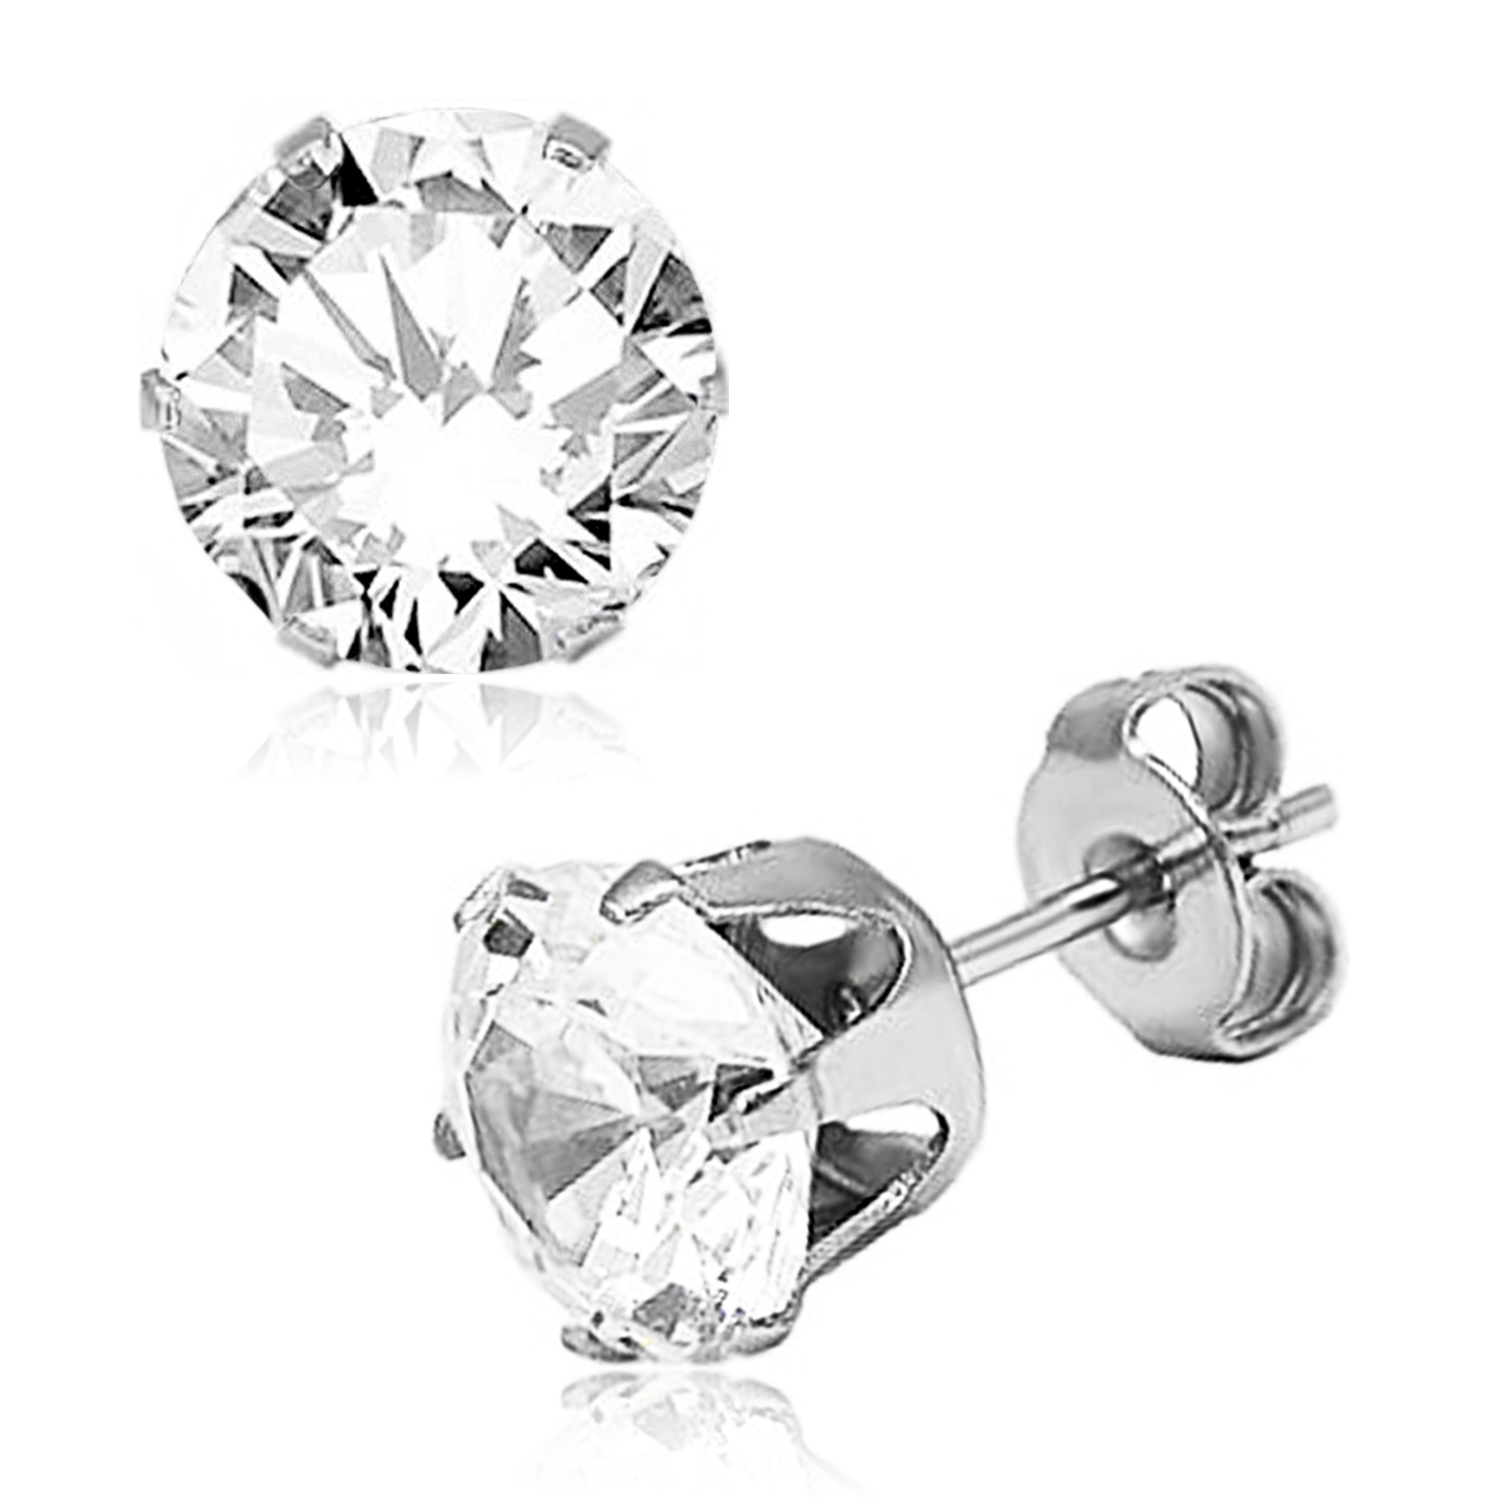 ''Stainless Steel 6-Prong Round White Cubic Zirconia STUD EARRINGS, Size: 4 mm''